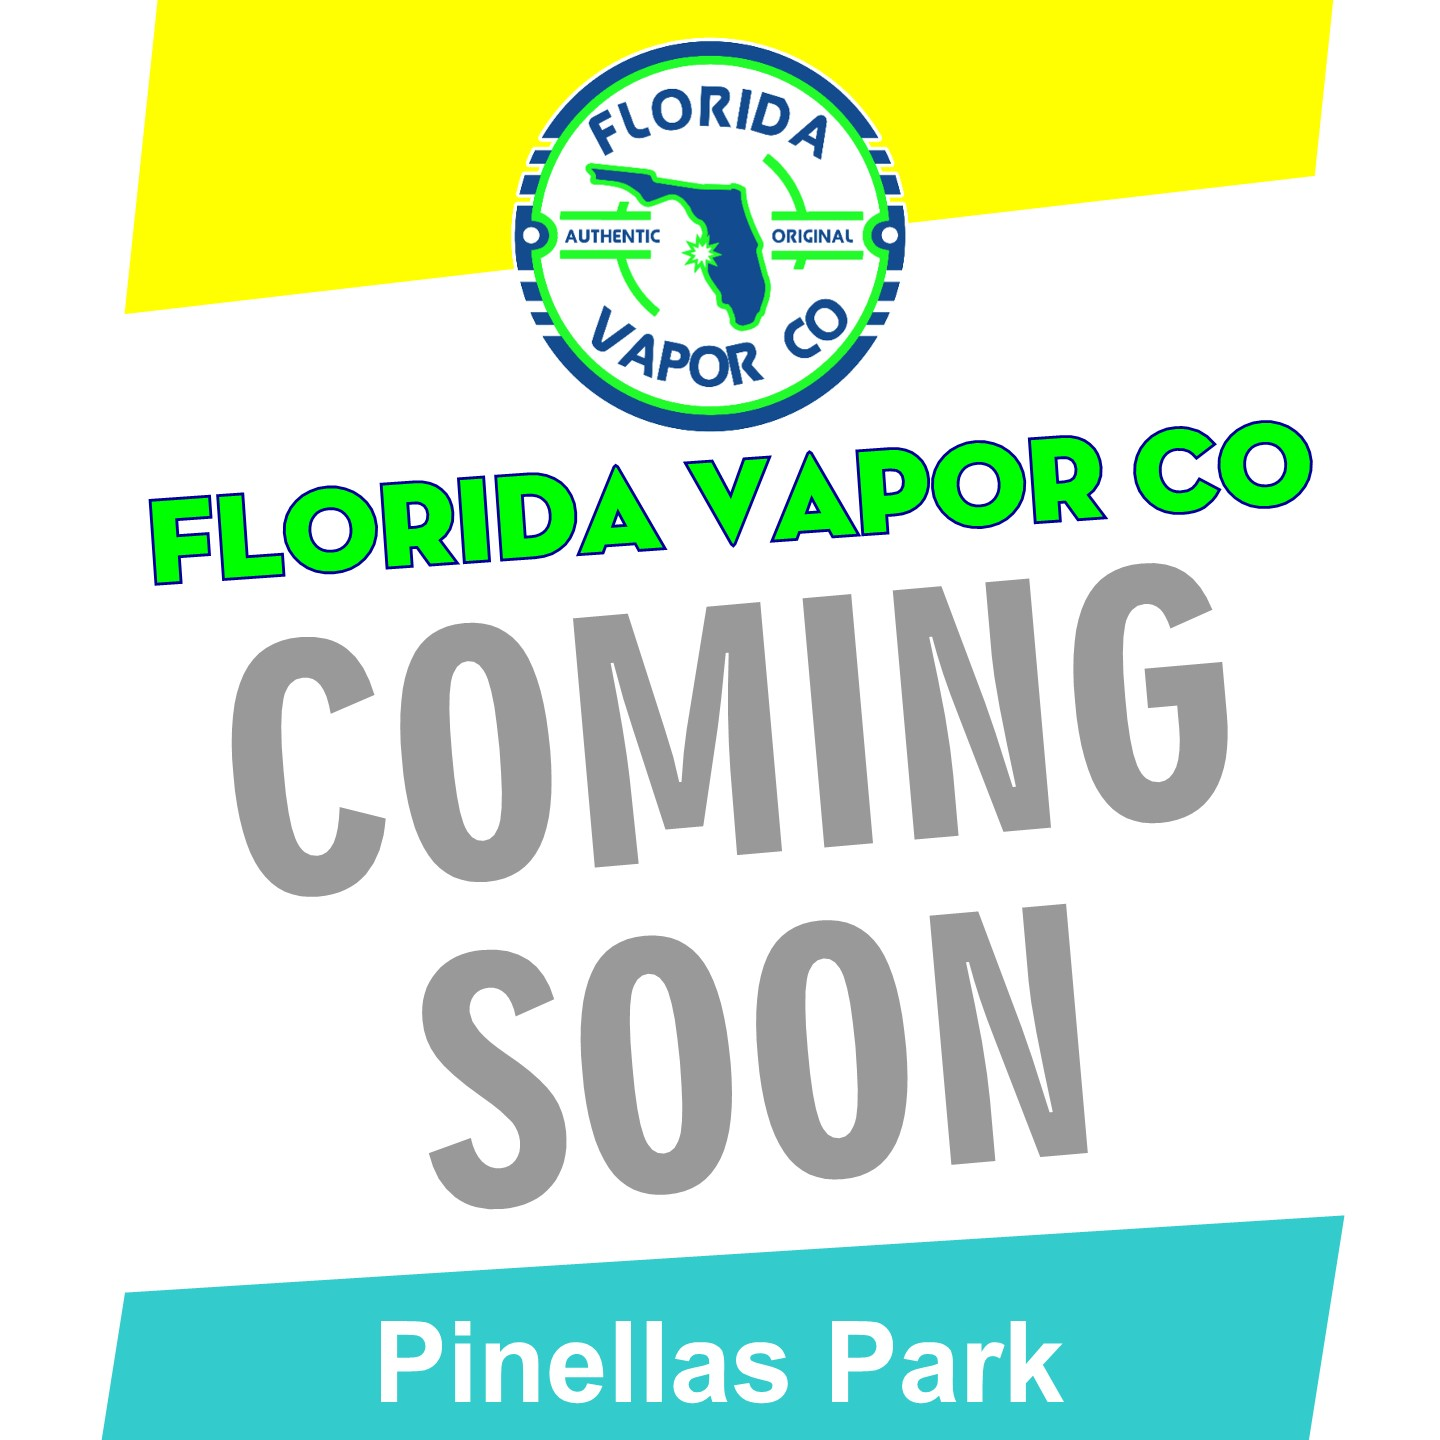 fla_vapor_co_pinellas_park.jpg